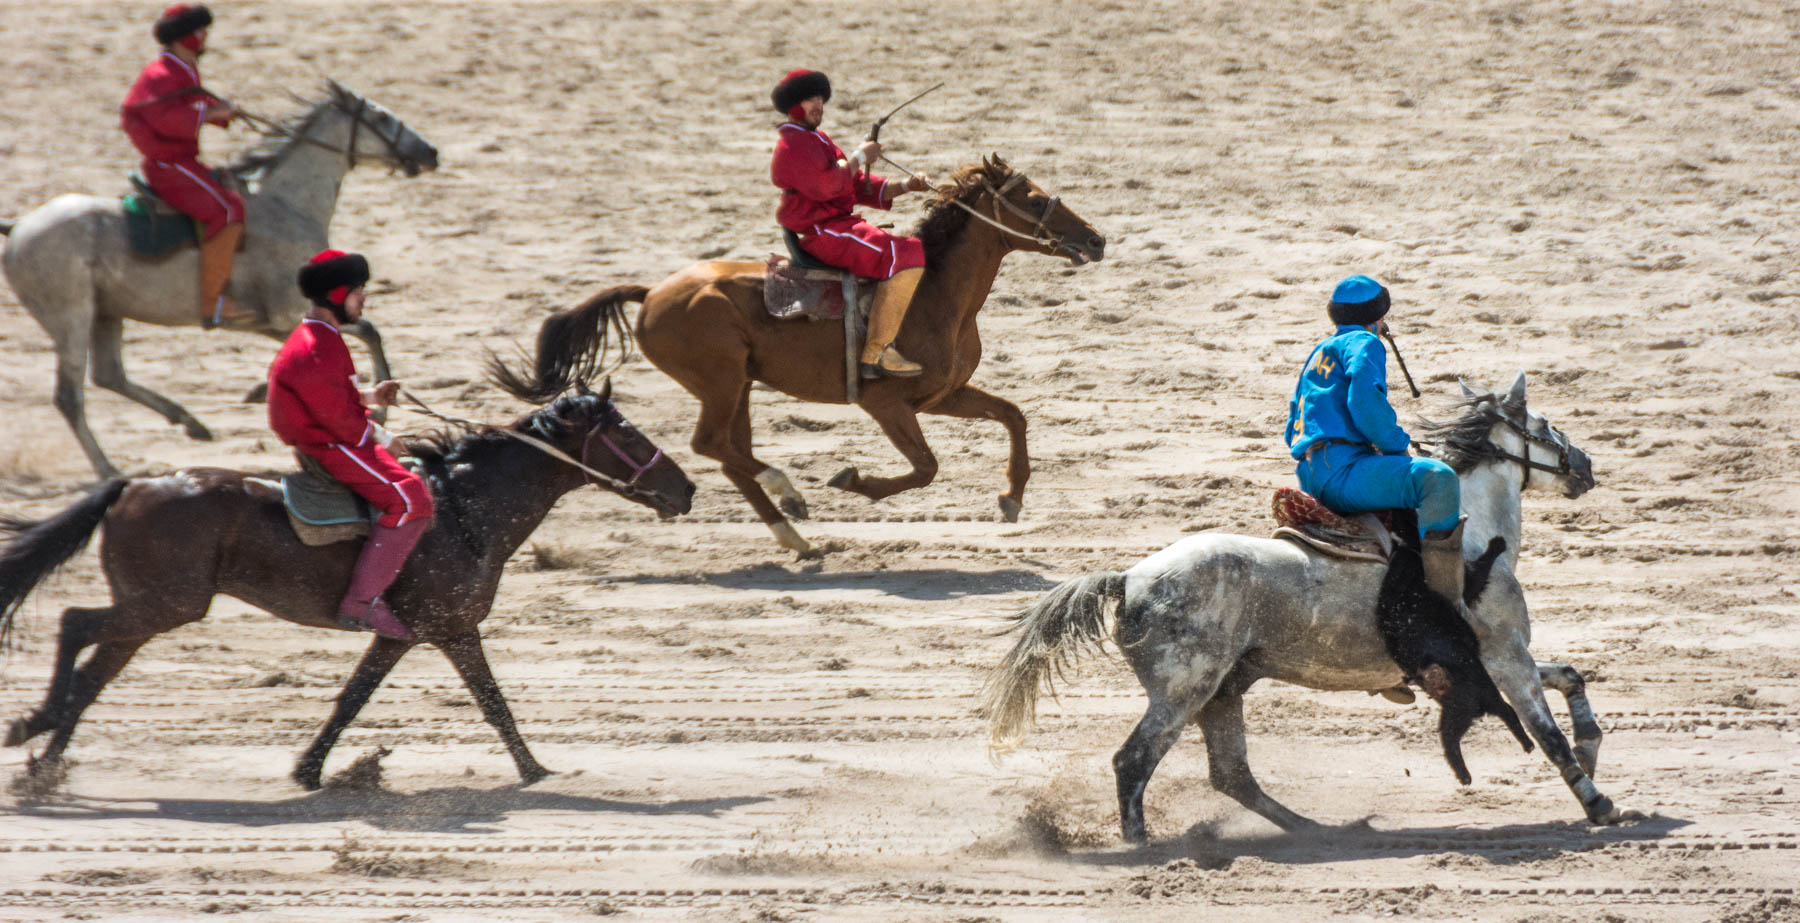 Kok buru in Kyrgyzstan - Are the 2018 World Nomad Games worth the trip? - Lost With Purpose